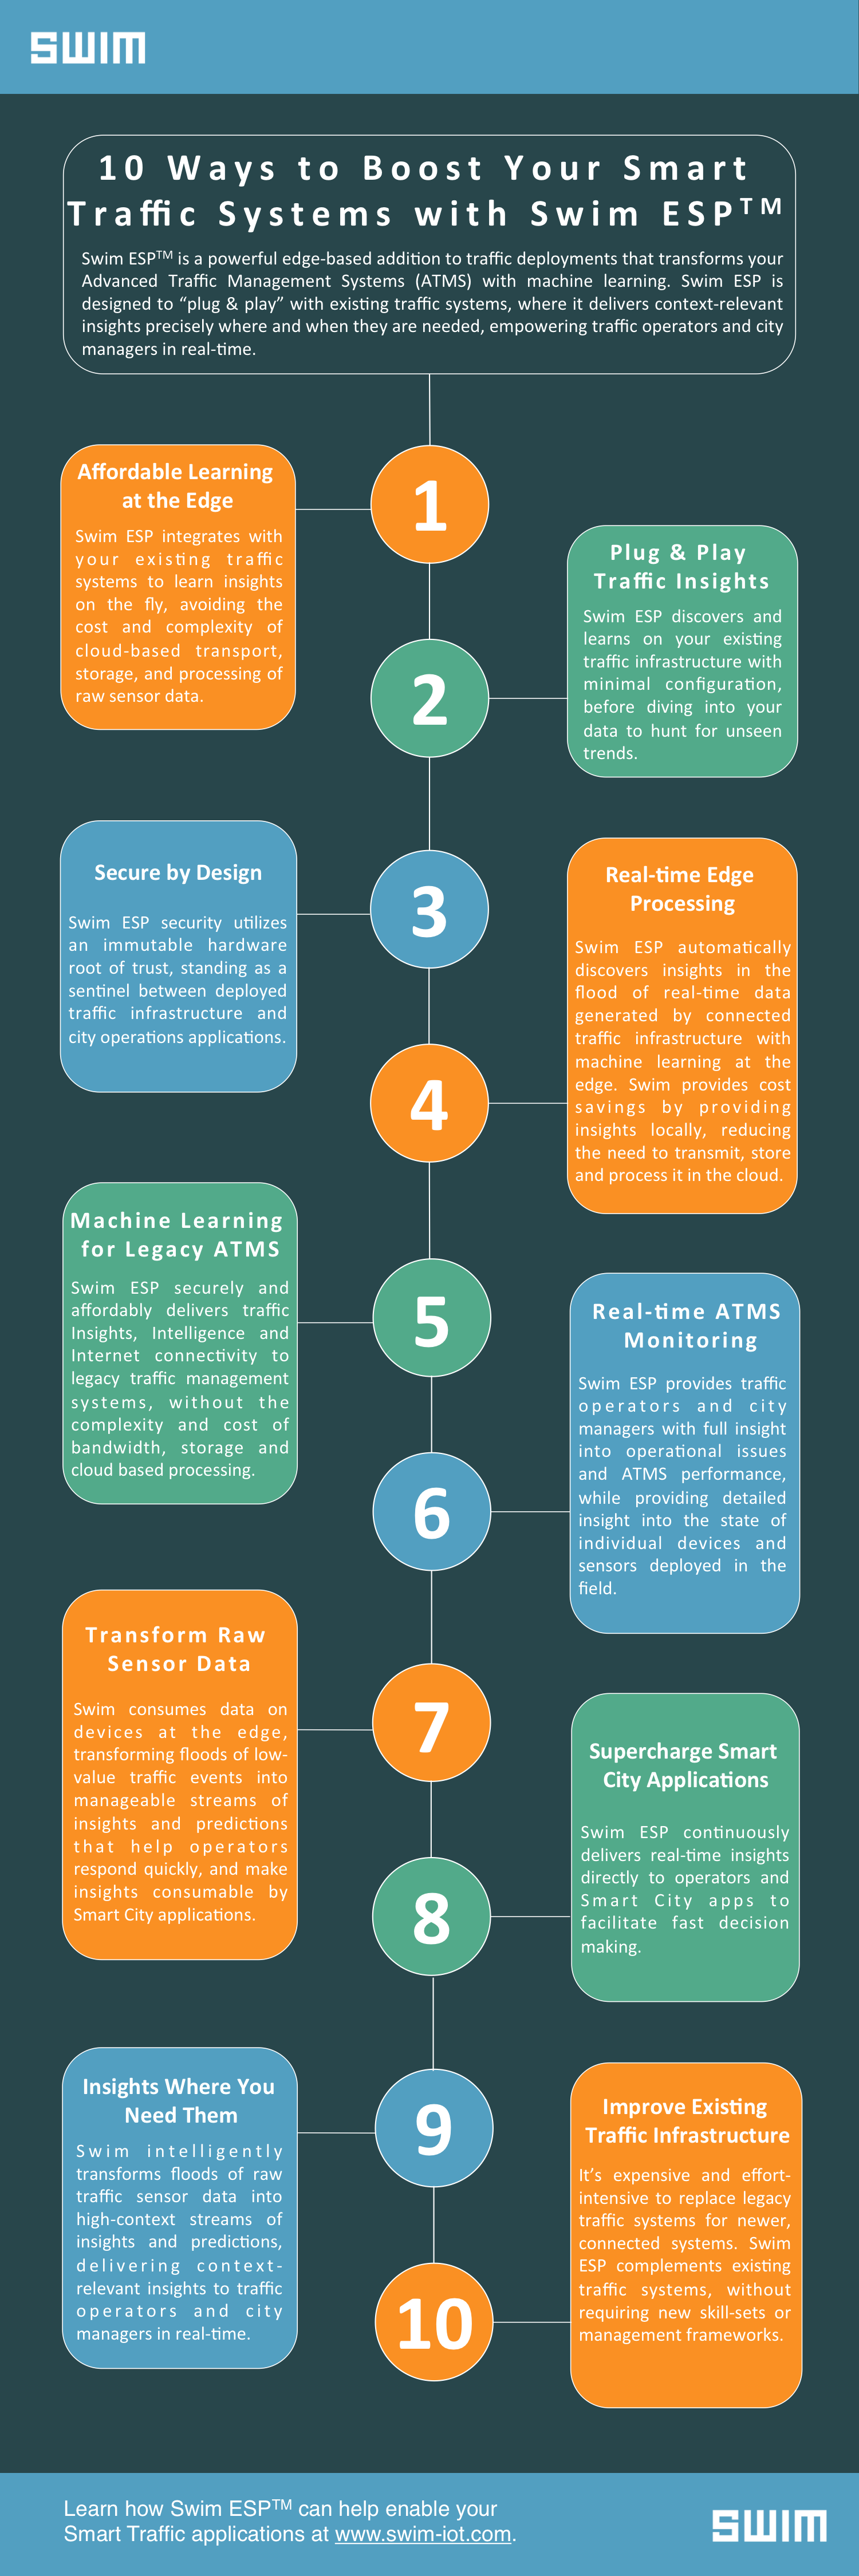 Ten Ways to Boost with ATMS with Swim ESP & Machine Learning - IOT Infographic | Swim Inc.